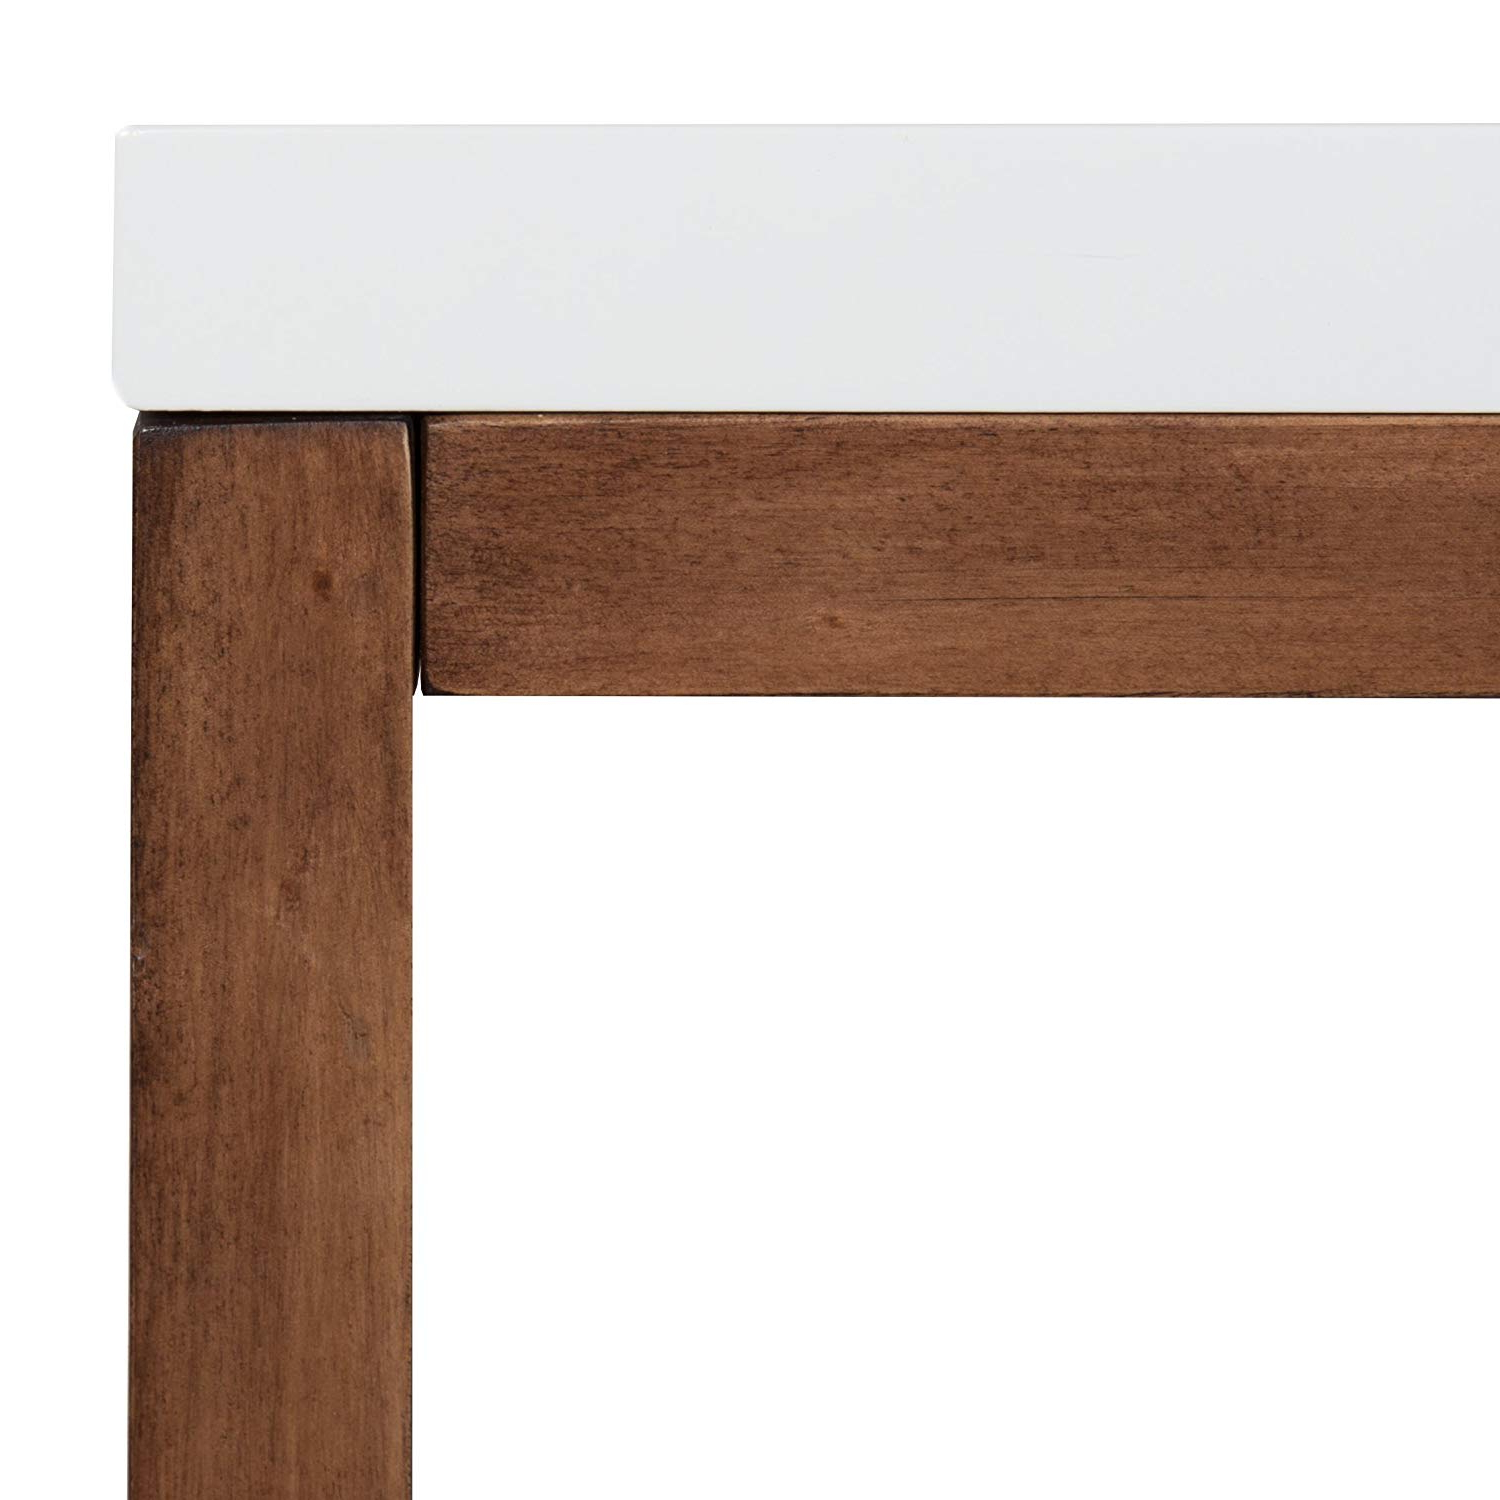 Preferred Amazon: Kate And Laurel Kaya 36 Inch Tall Pub/bar Table, Two Pertaining To Kaya 3 Piece Dining Sets (View 9 of 25)